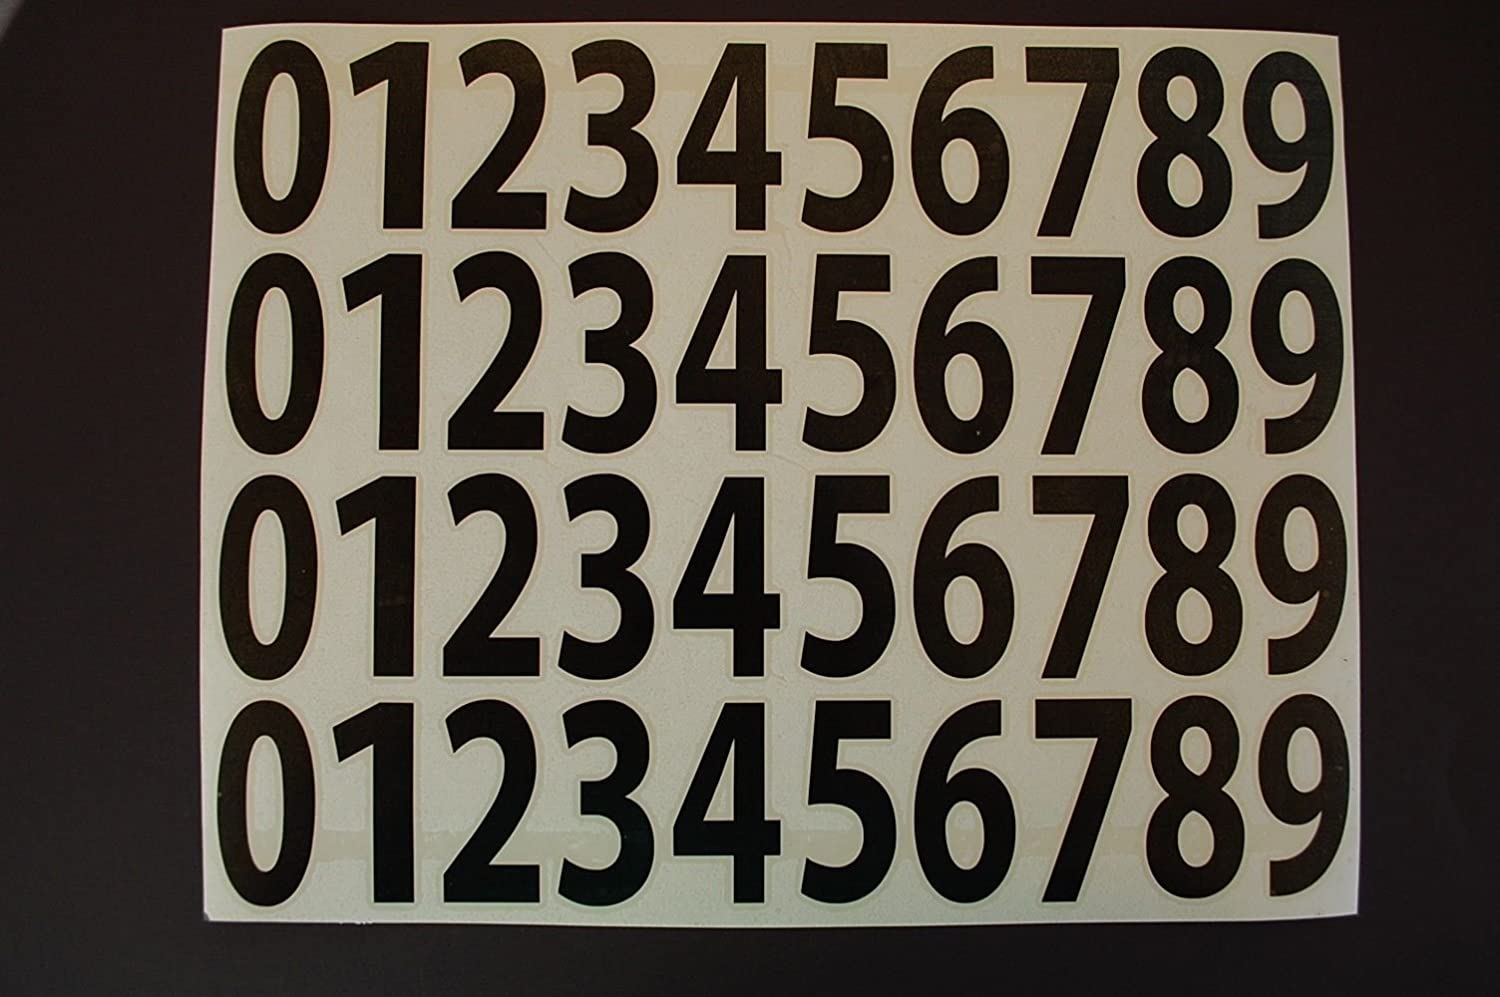 0-9 Numbers Vinyl Sticker Decals 2021 new Set of 2 Quantity limited Size 1 Pick 40 Color